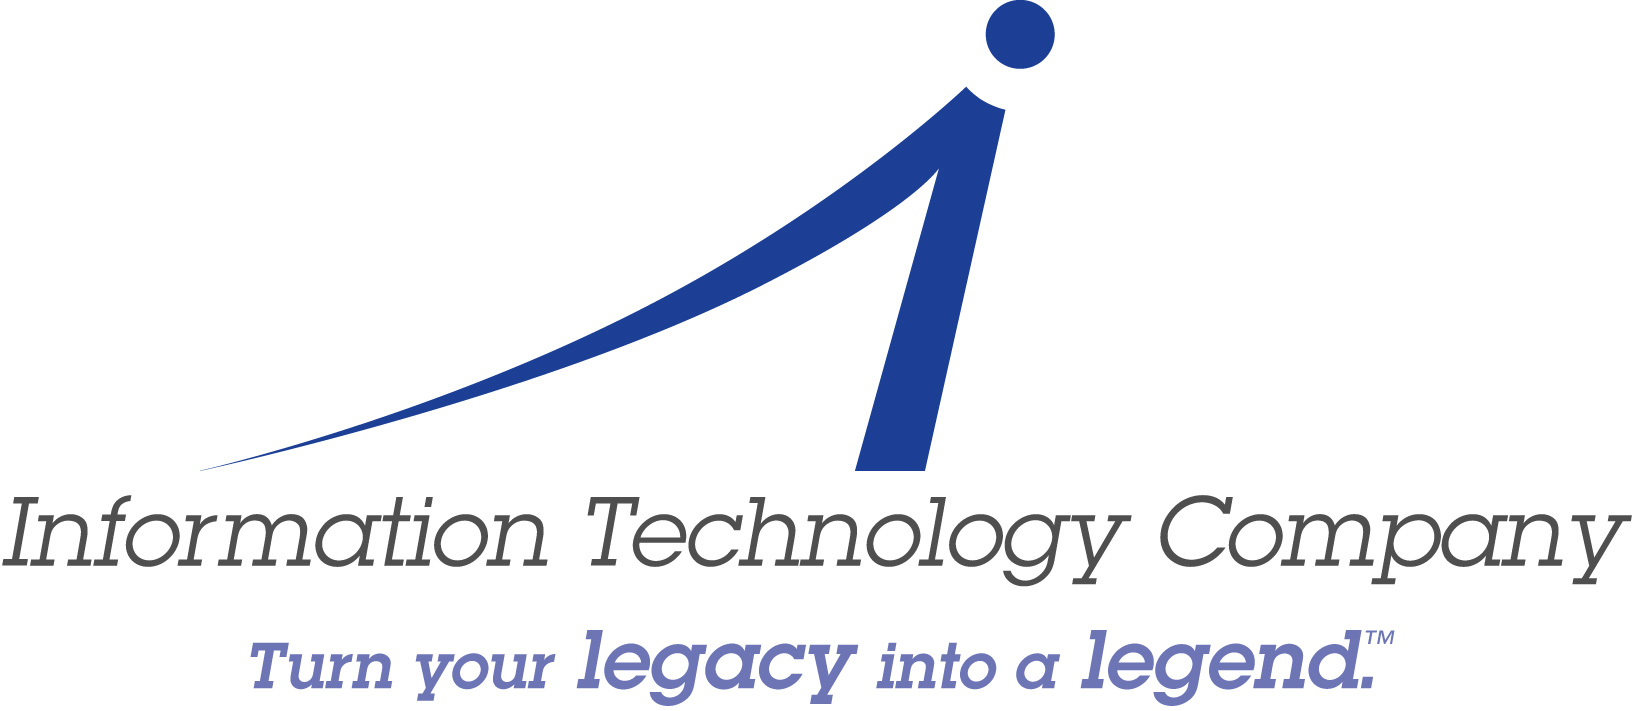 Information Technology Company, LLC